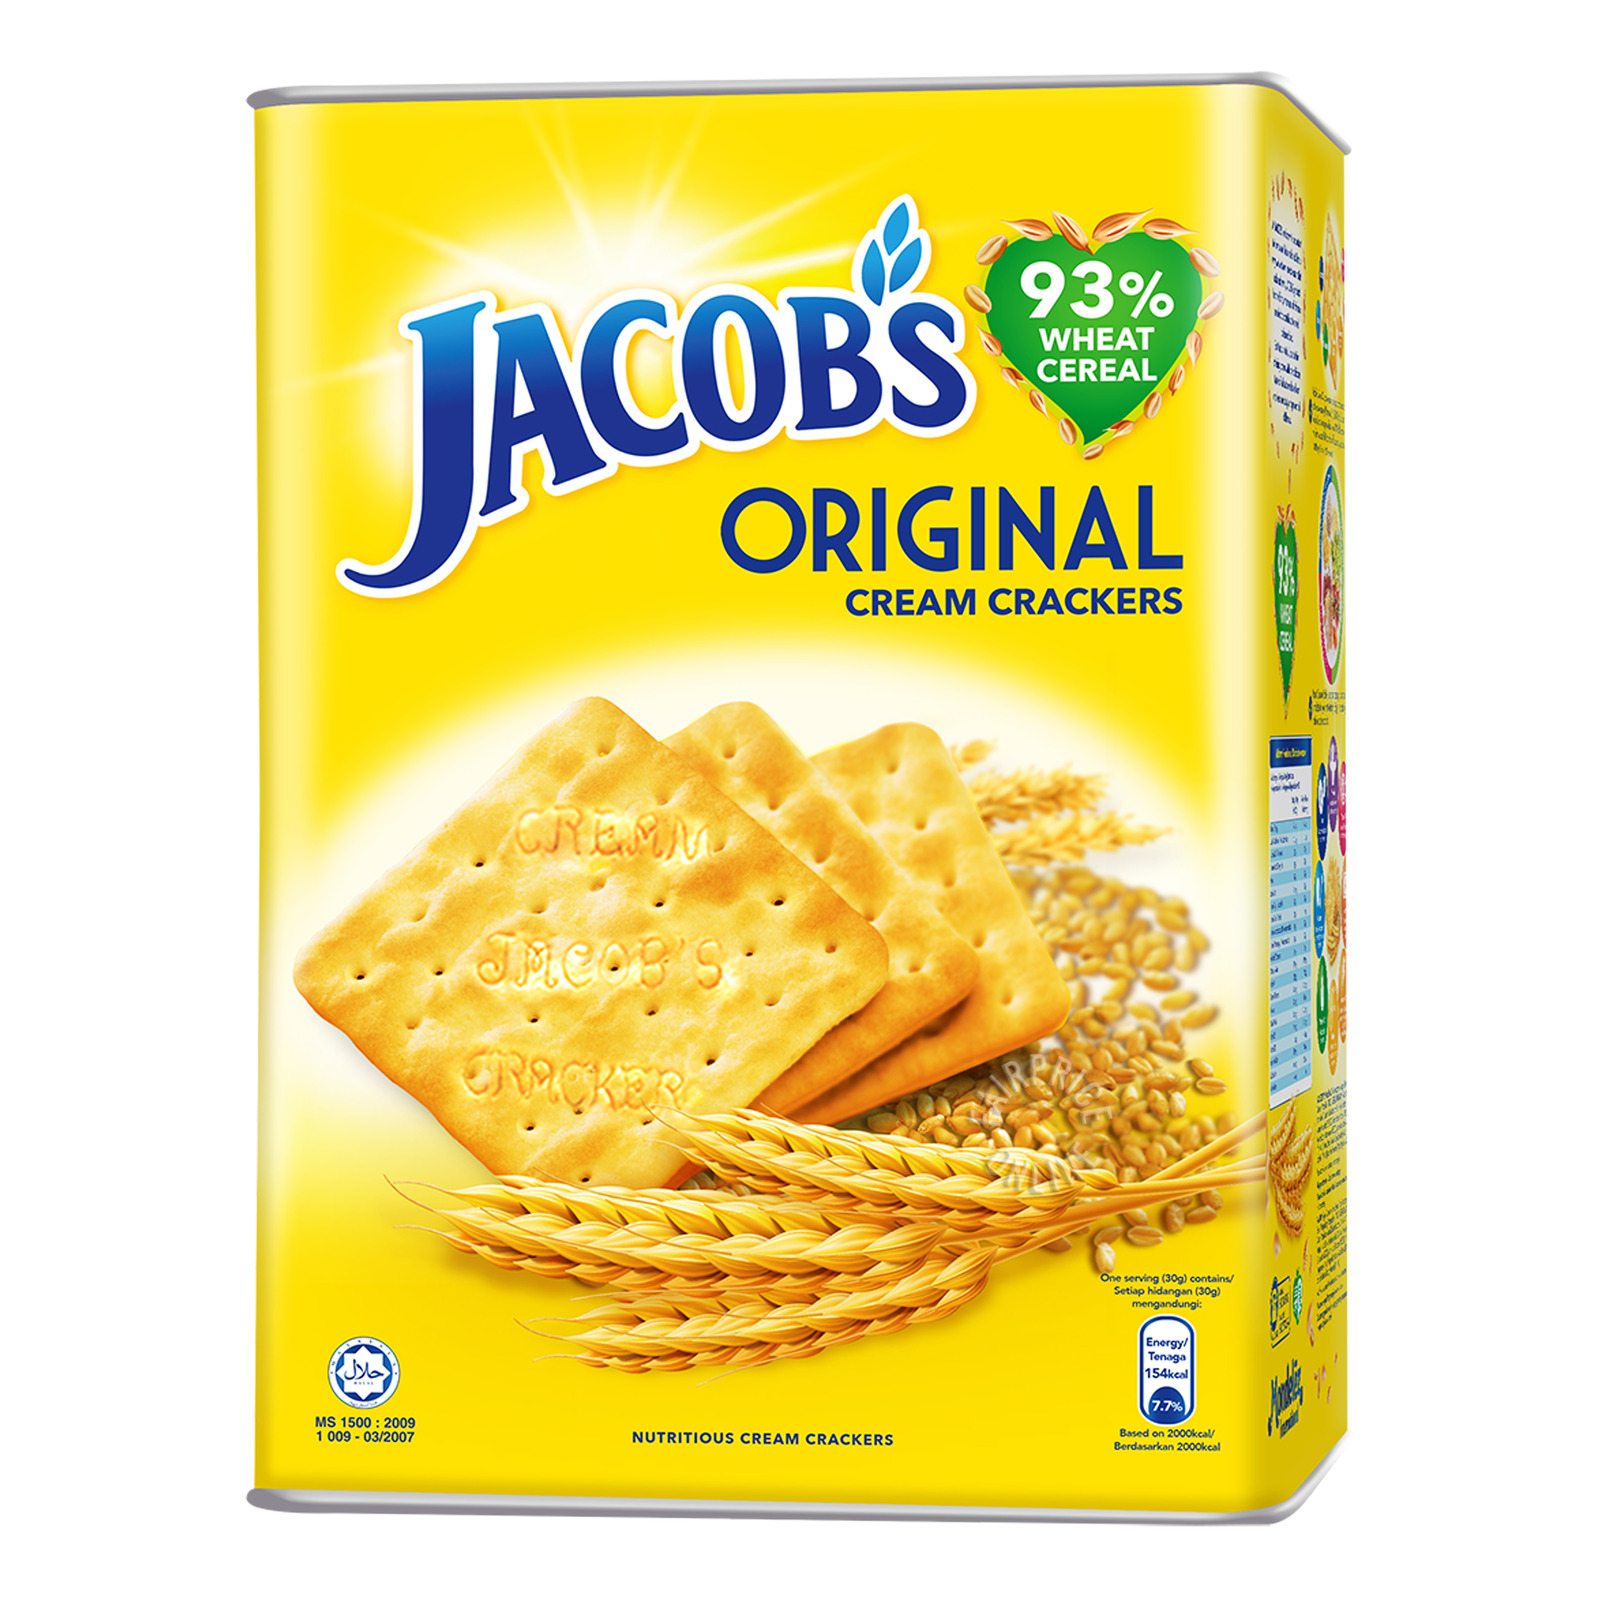 Jacob's Cream Crackers - Original